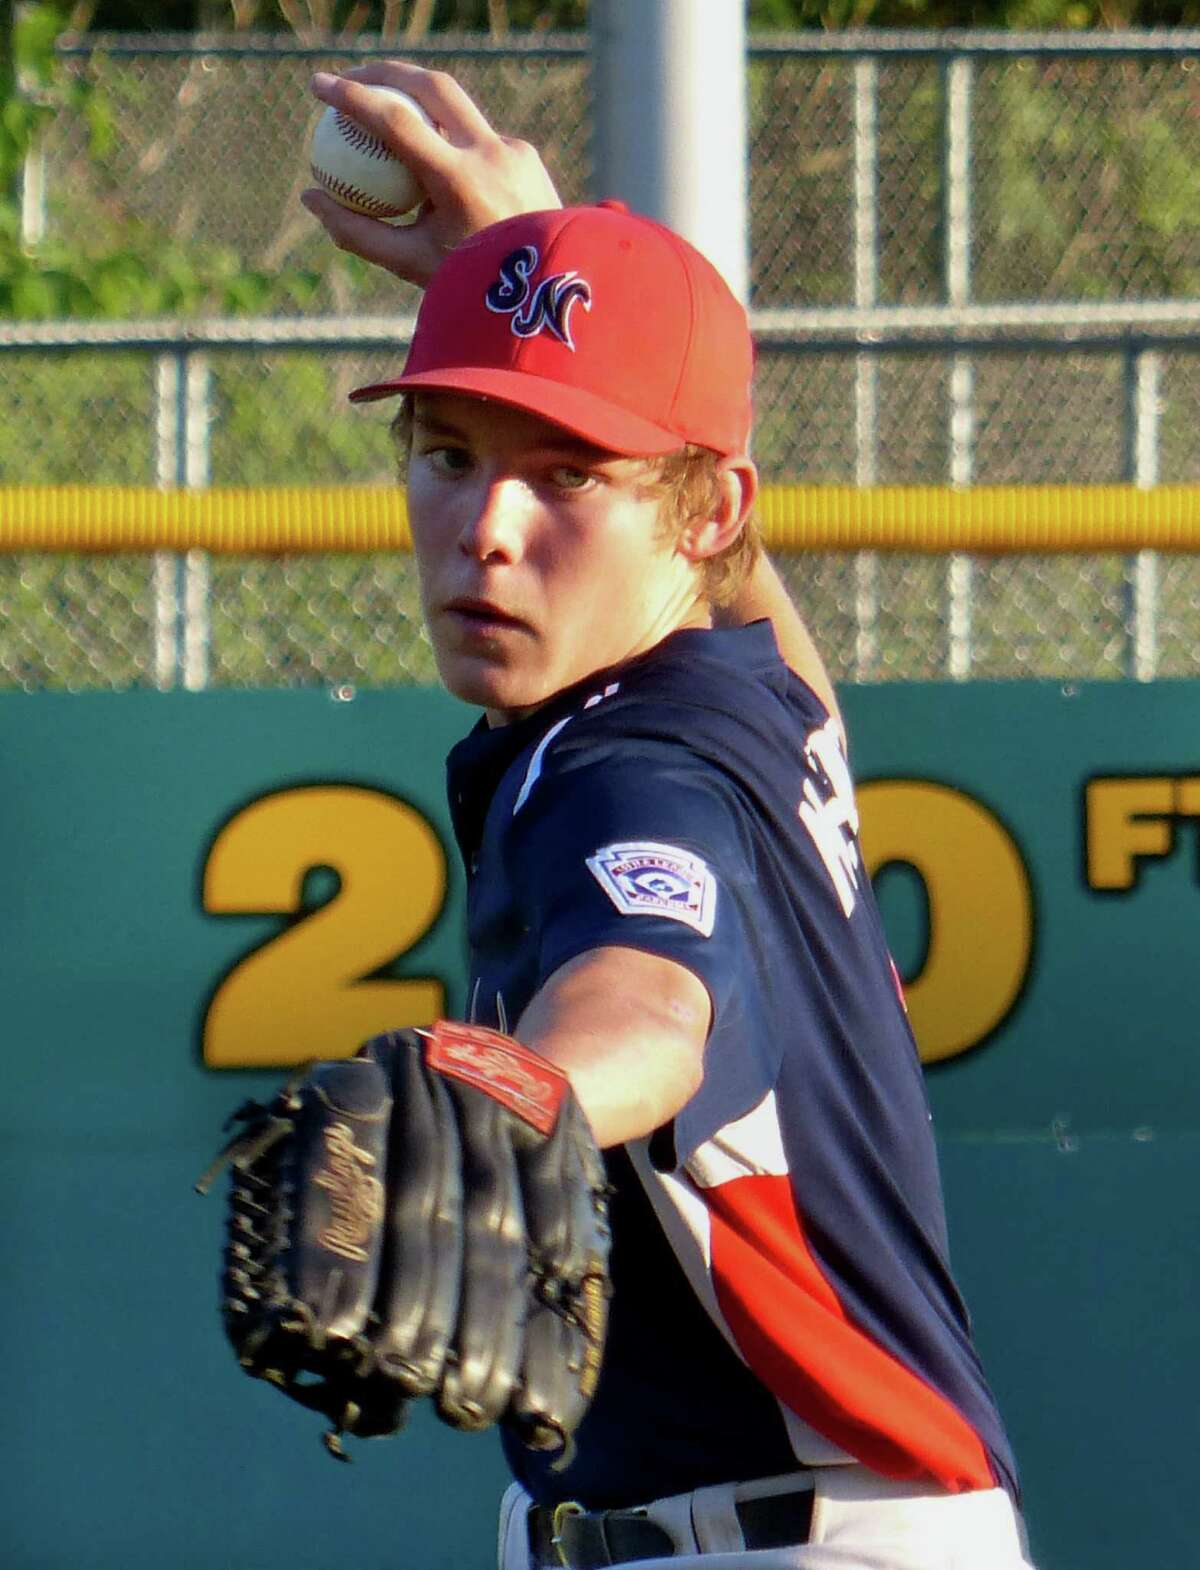 Stamford North's Calvin McKeever pitches against Southington in Newington July 29.